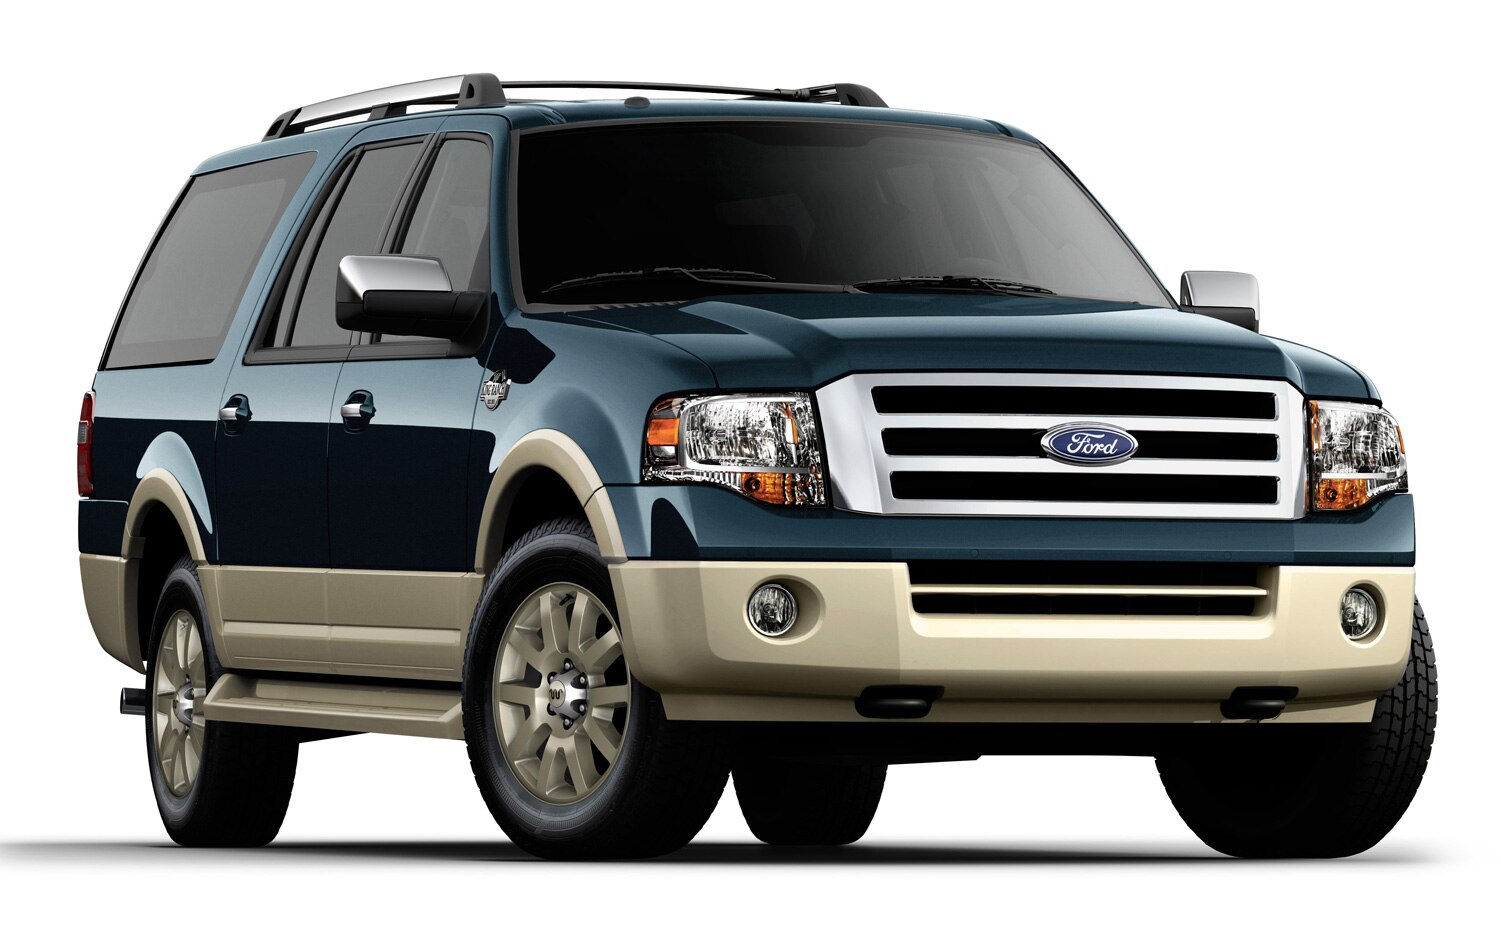 rumored ford expedition to retain v 8 power navigator. Black Bedroom Furniture Sets. Home Design Ideas